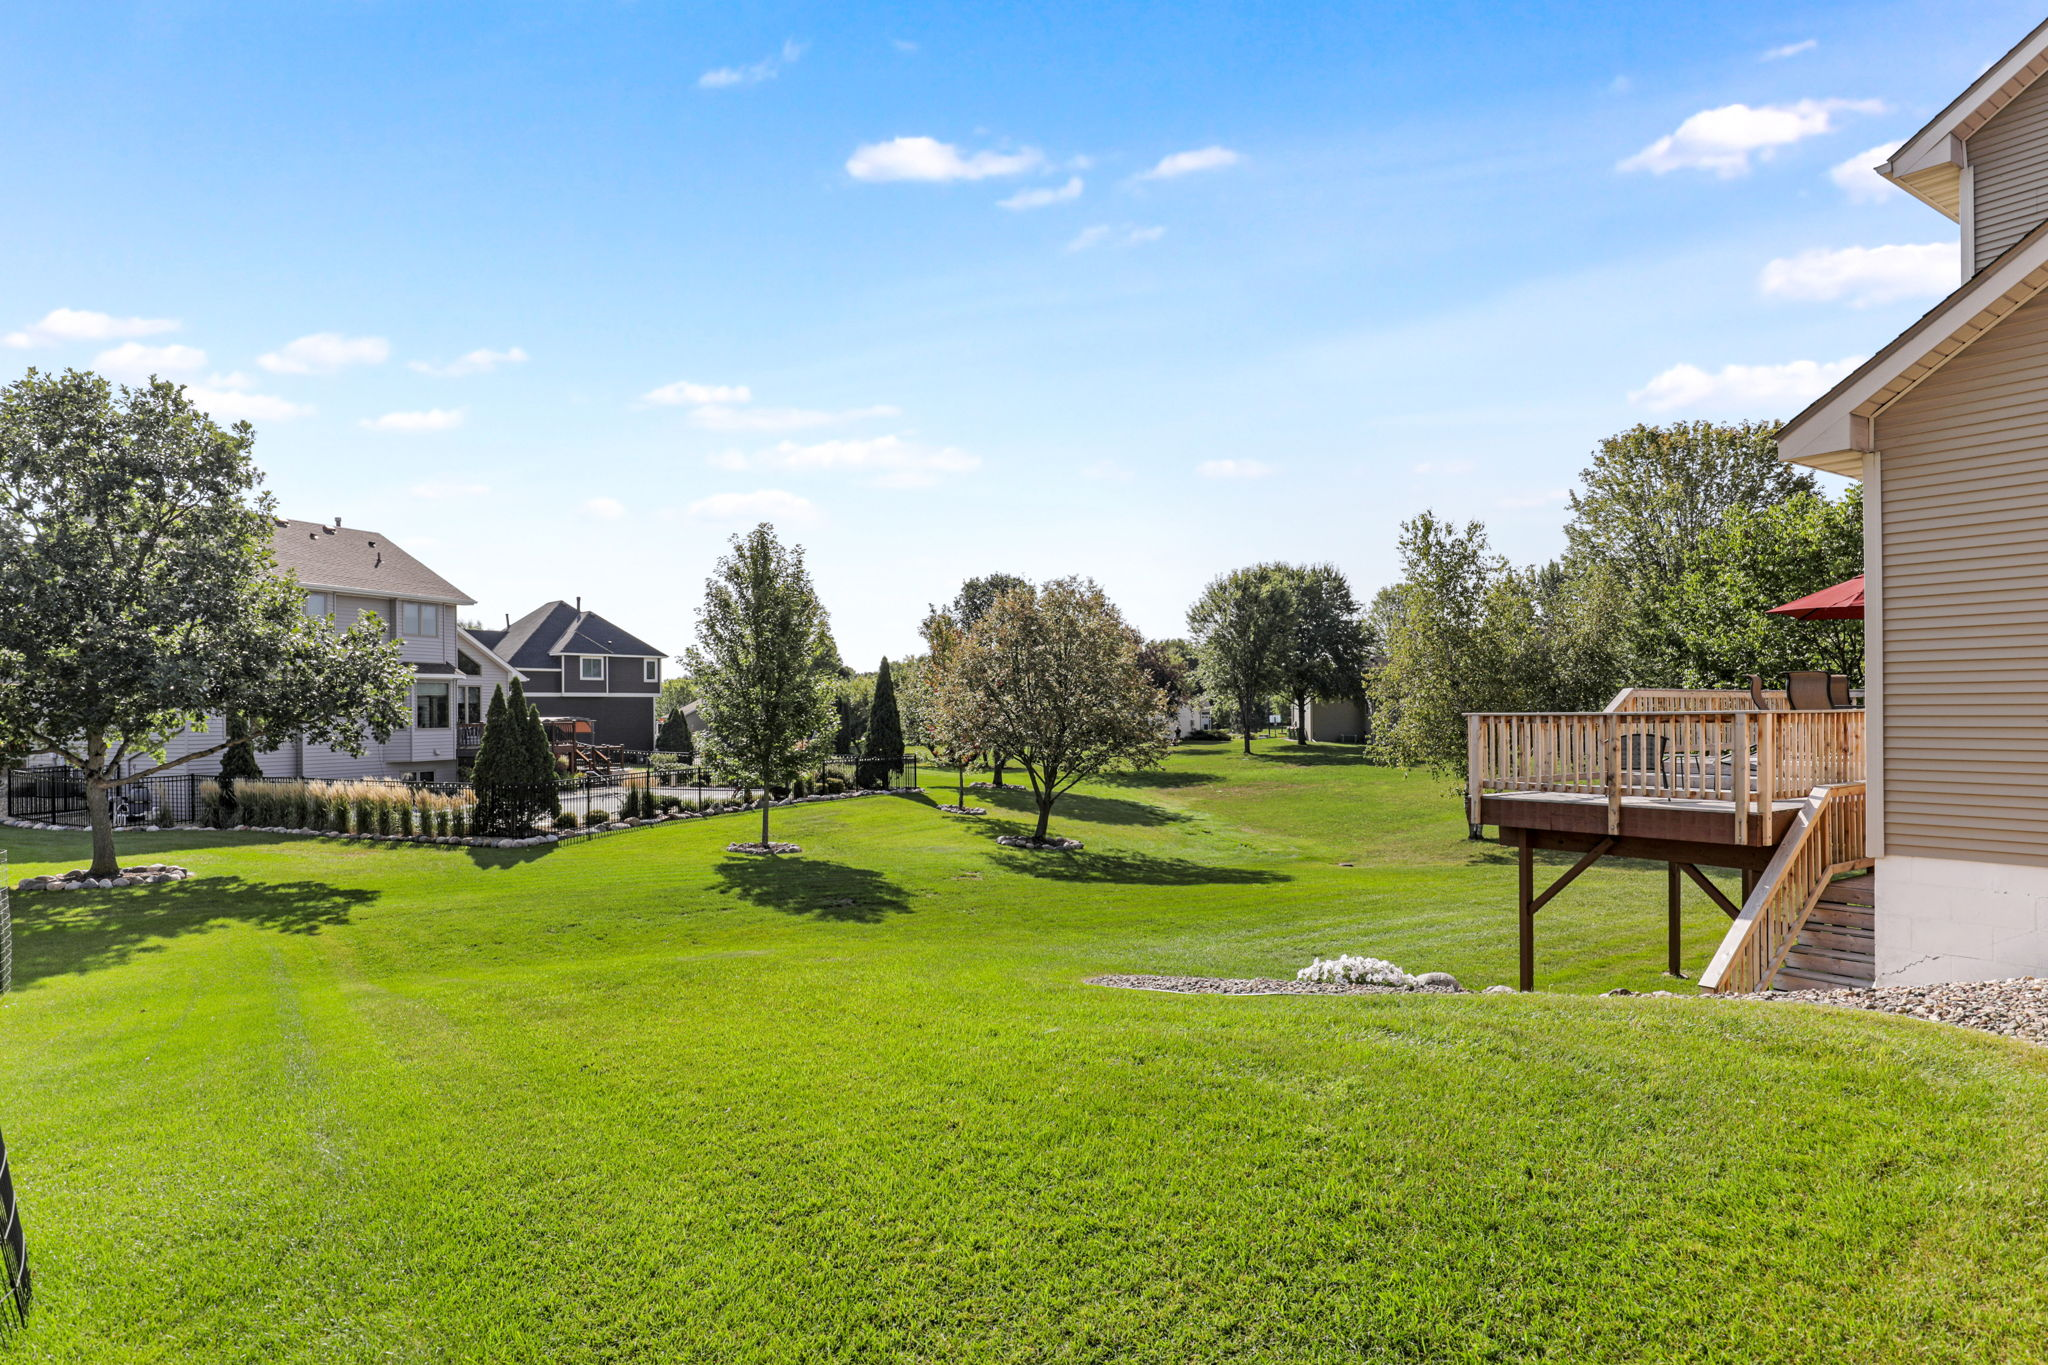 6652 Clearwater Creek Dr, Lino Lakes, MN 55038, USA Photo 47